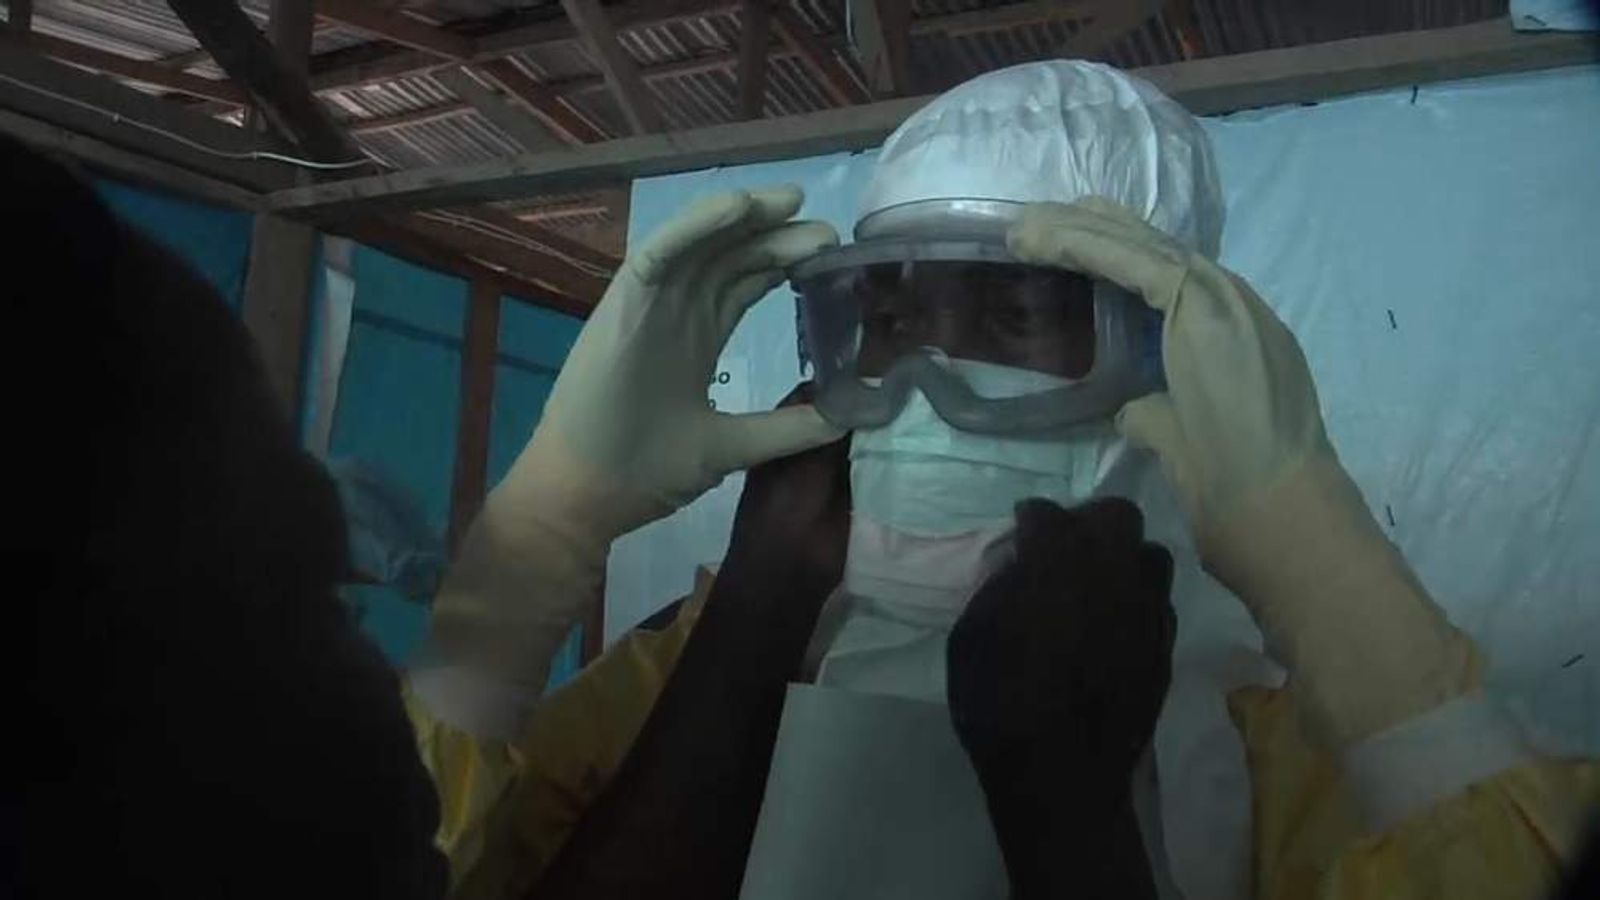 UNICEF workers prepare to enter the infection zone